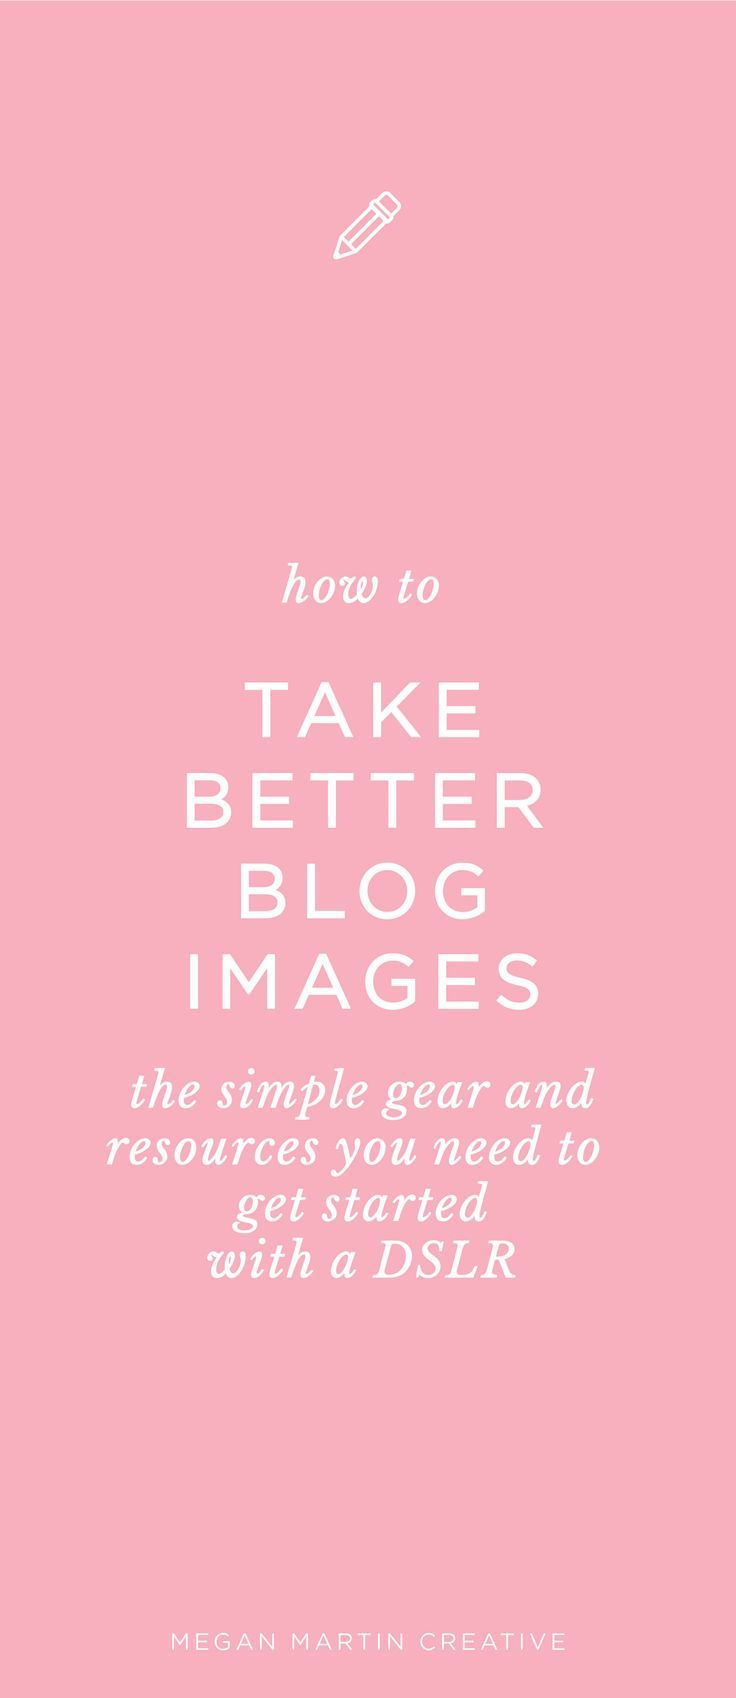 how to take better images for your blog on Megan Martin Creative, entry level DSLR, how to shoot in manual mode, how to edit with Lightroom, blogging tips, brand, branding, 35mm lens, 50mm lens, nikon d3200, light and airy photos